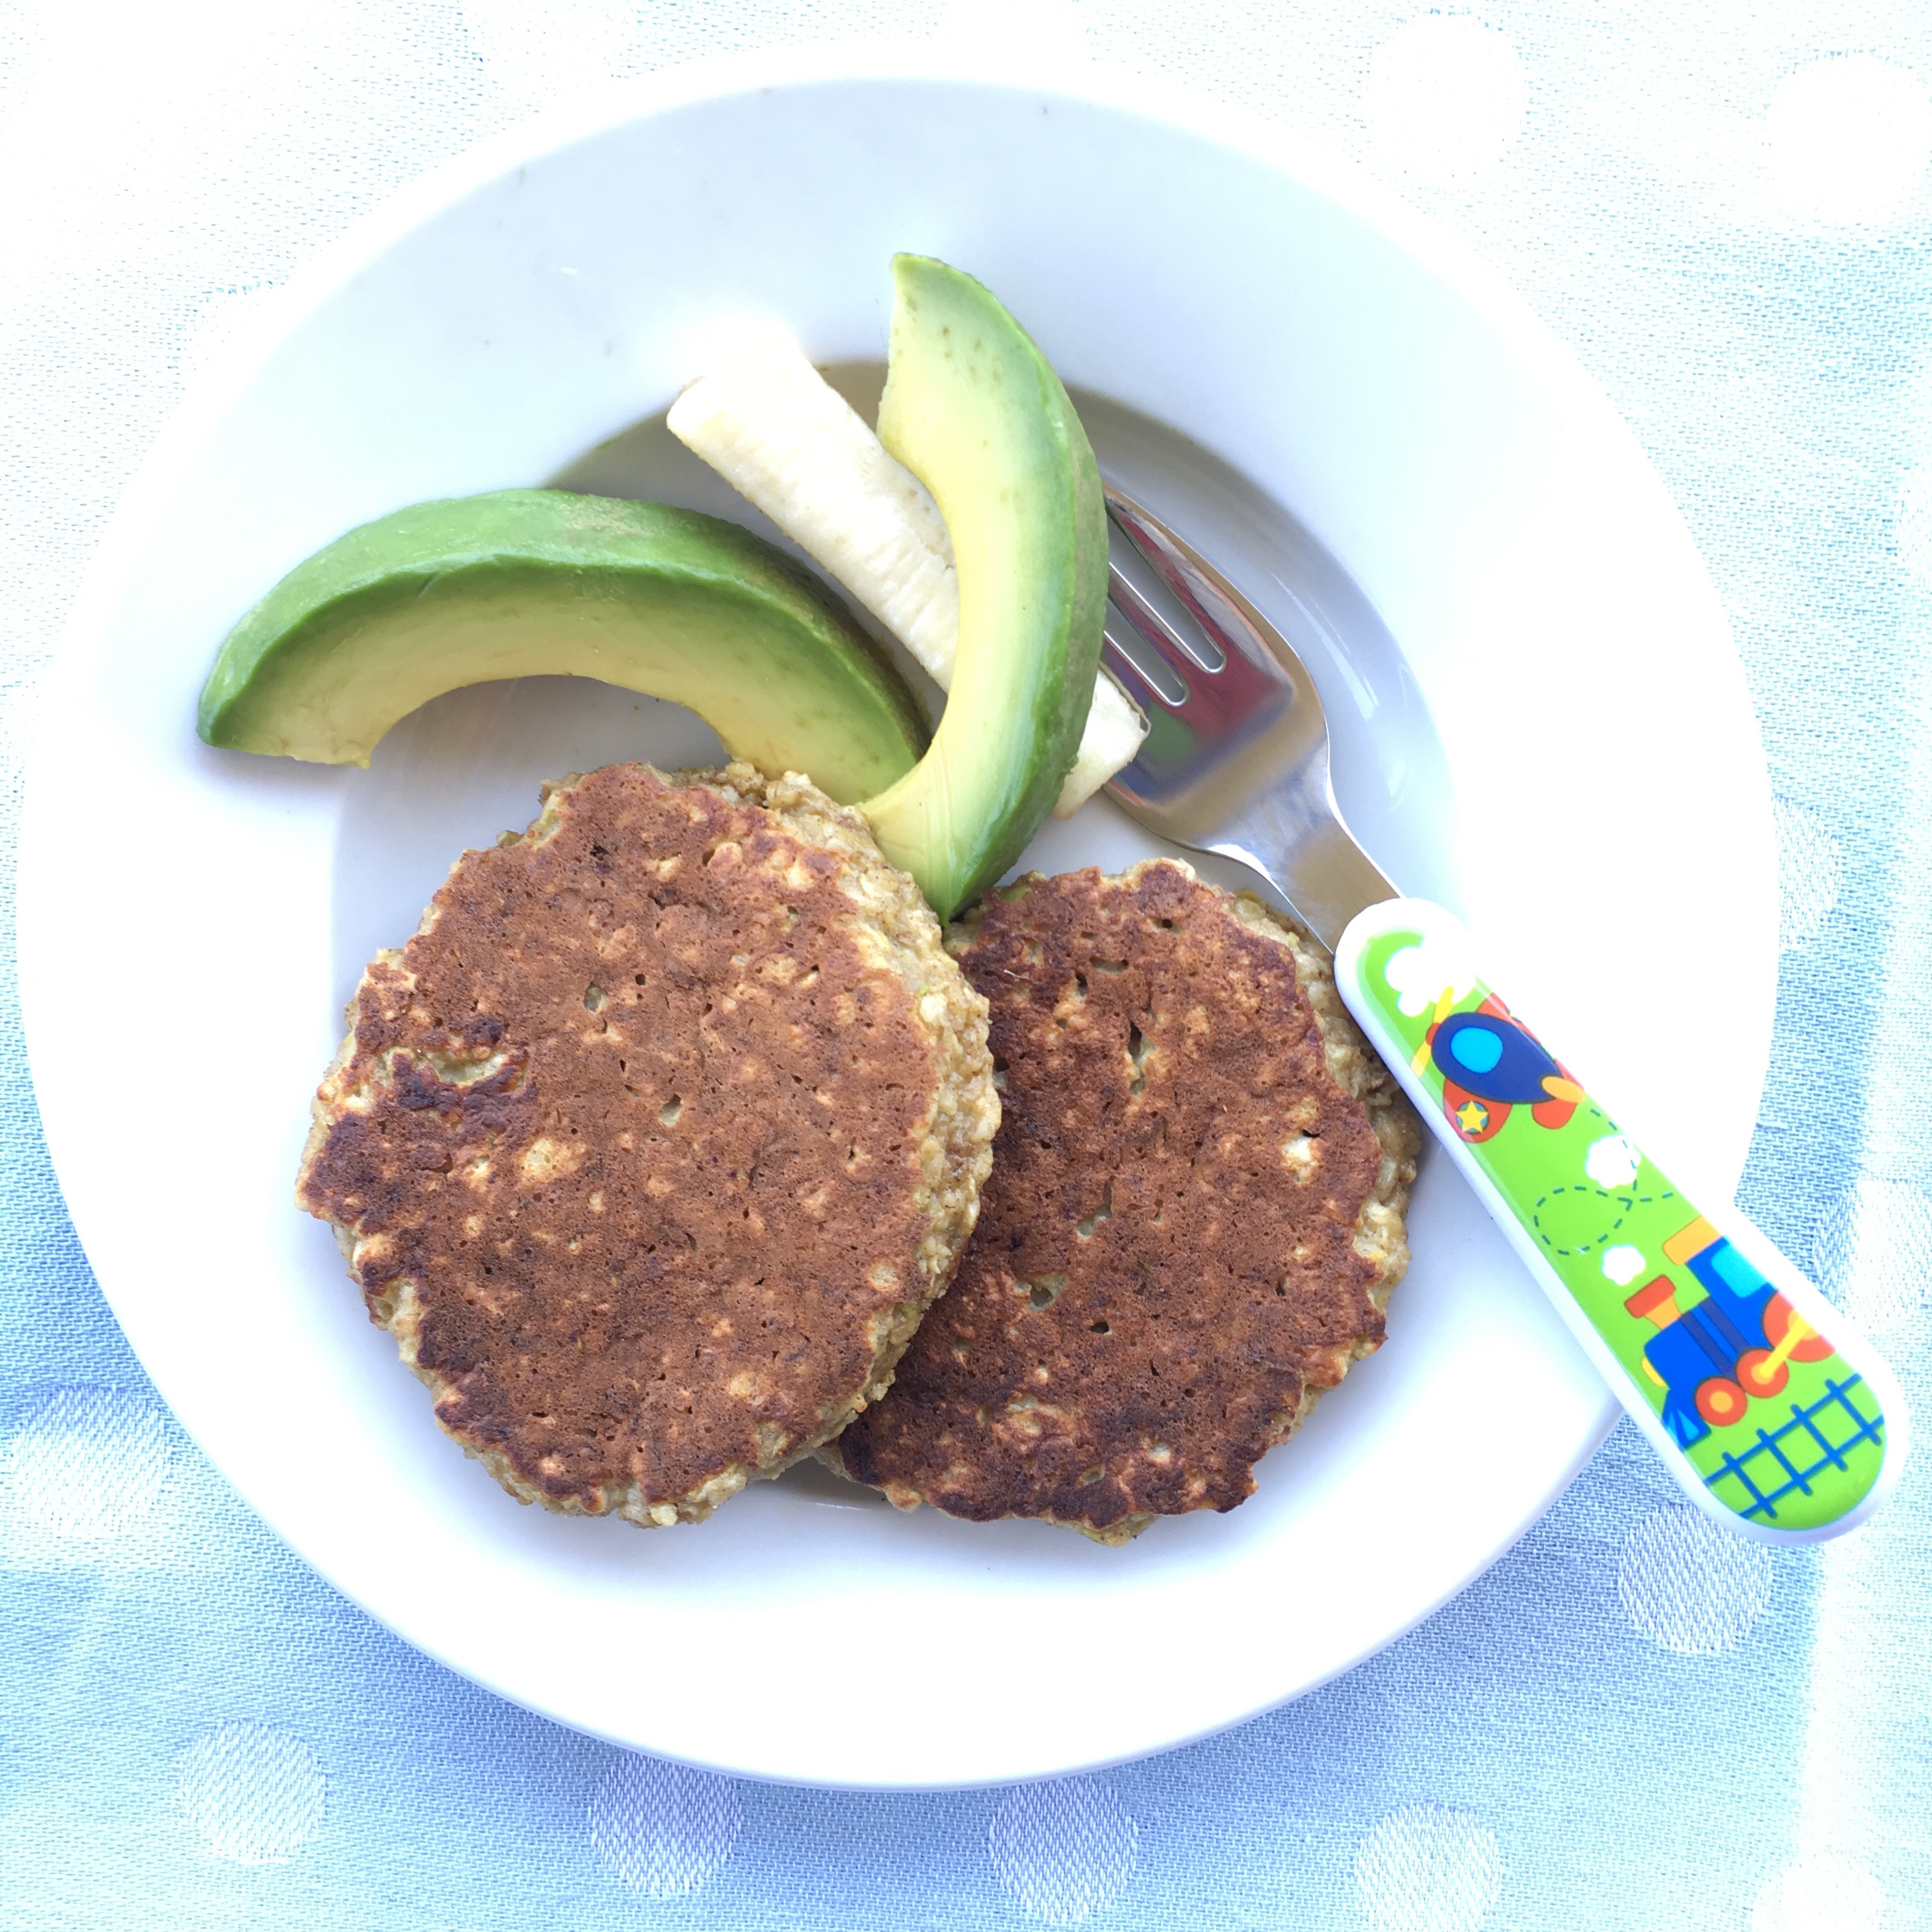 Fluffy ricotta and california avocado pancakes katie is an expert on baby led weaning aka baby led feeding she has one year old forumfinder Images